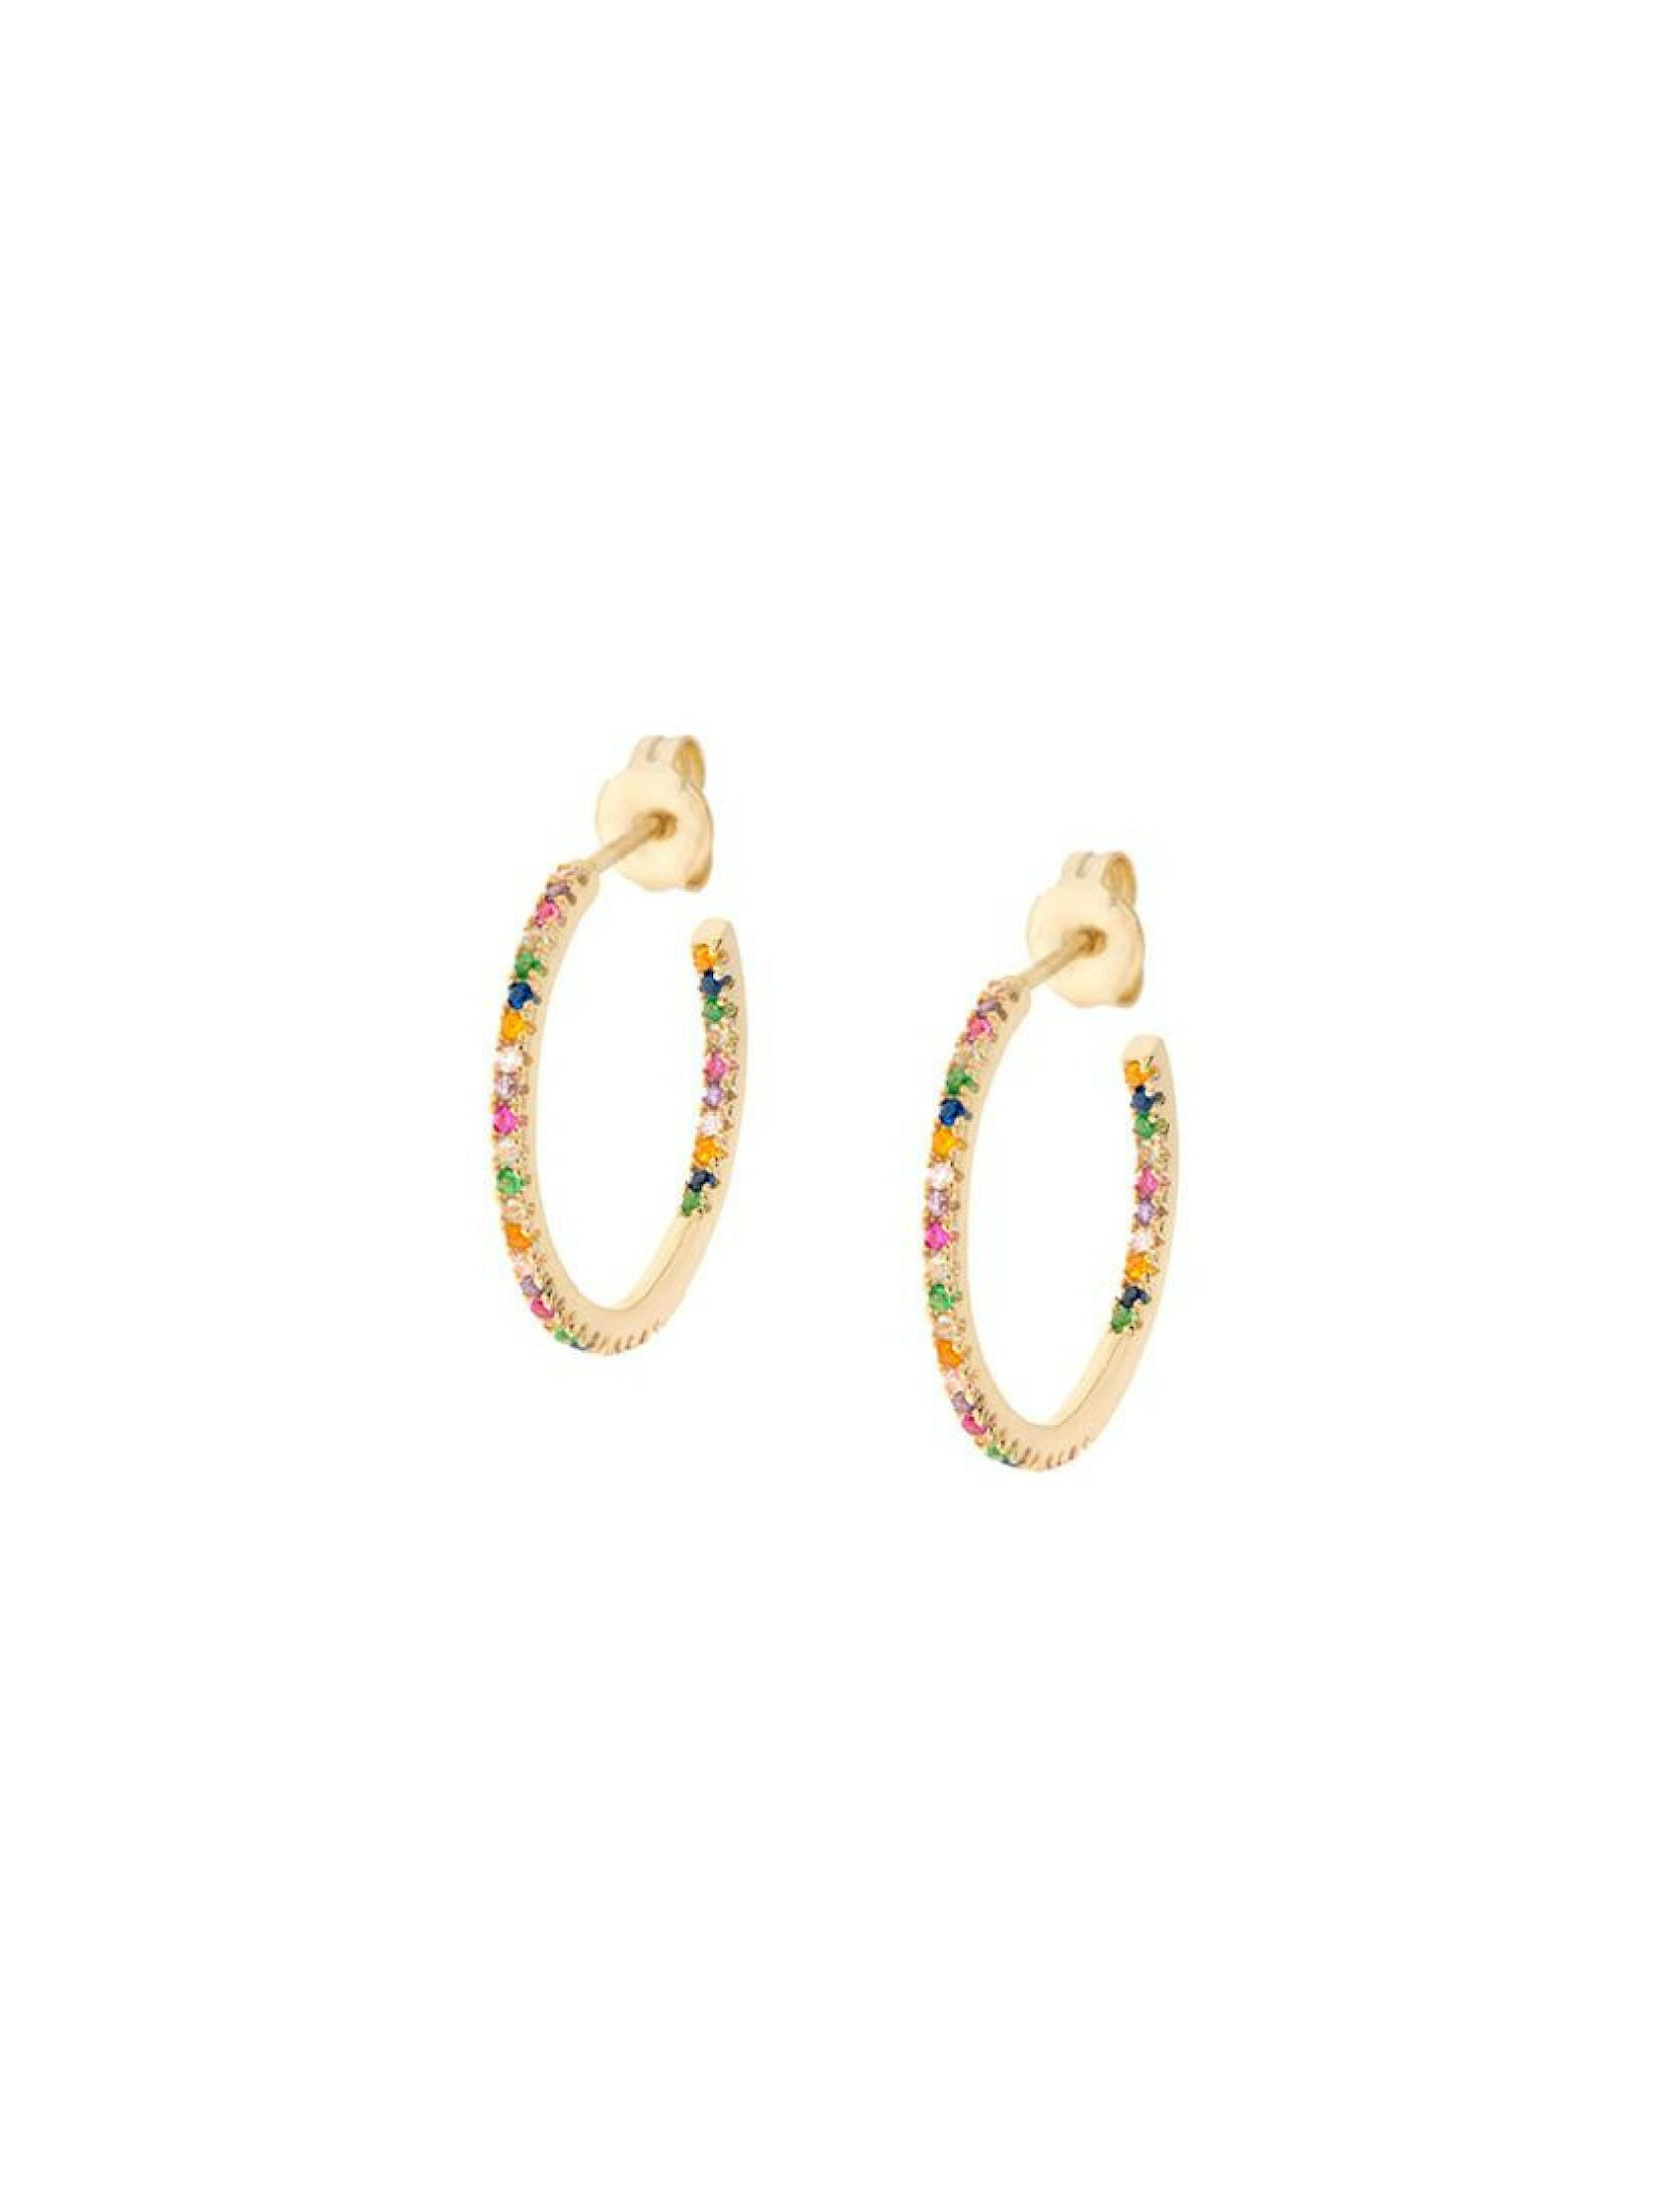 Woman wearing a earrings rental from Shashi called Rainbow Medium Hoop